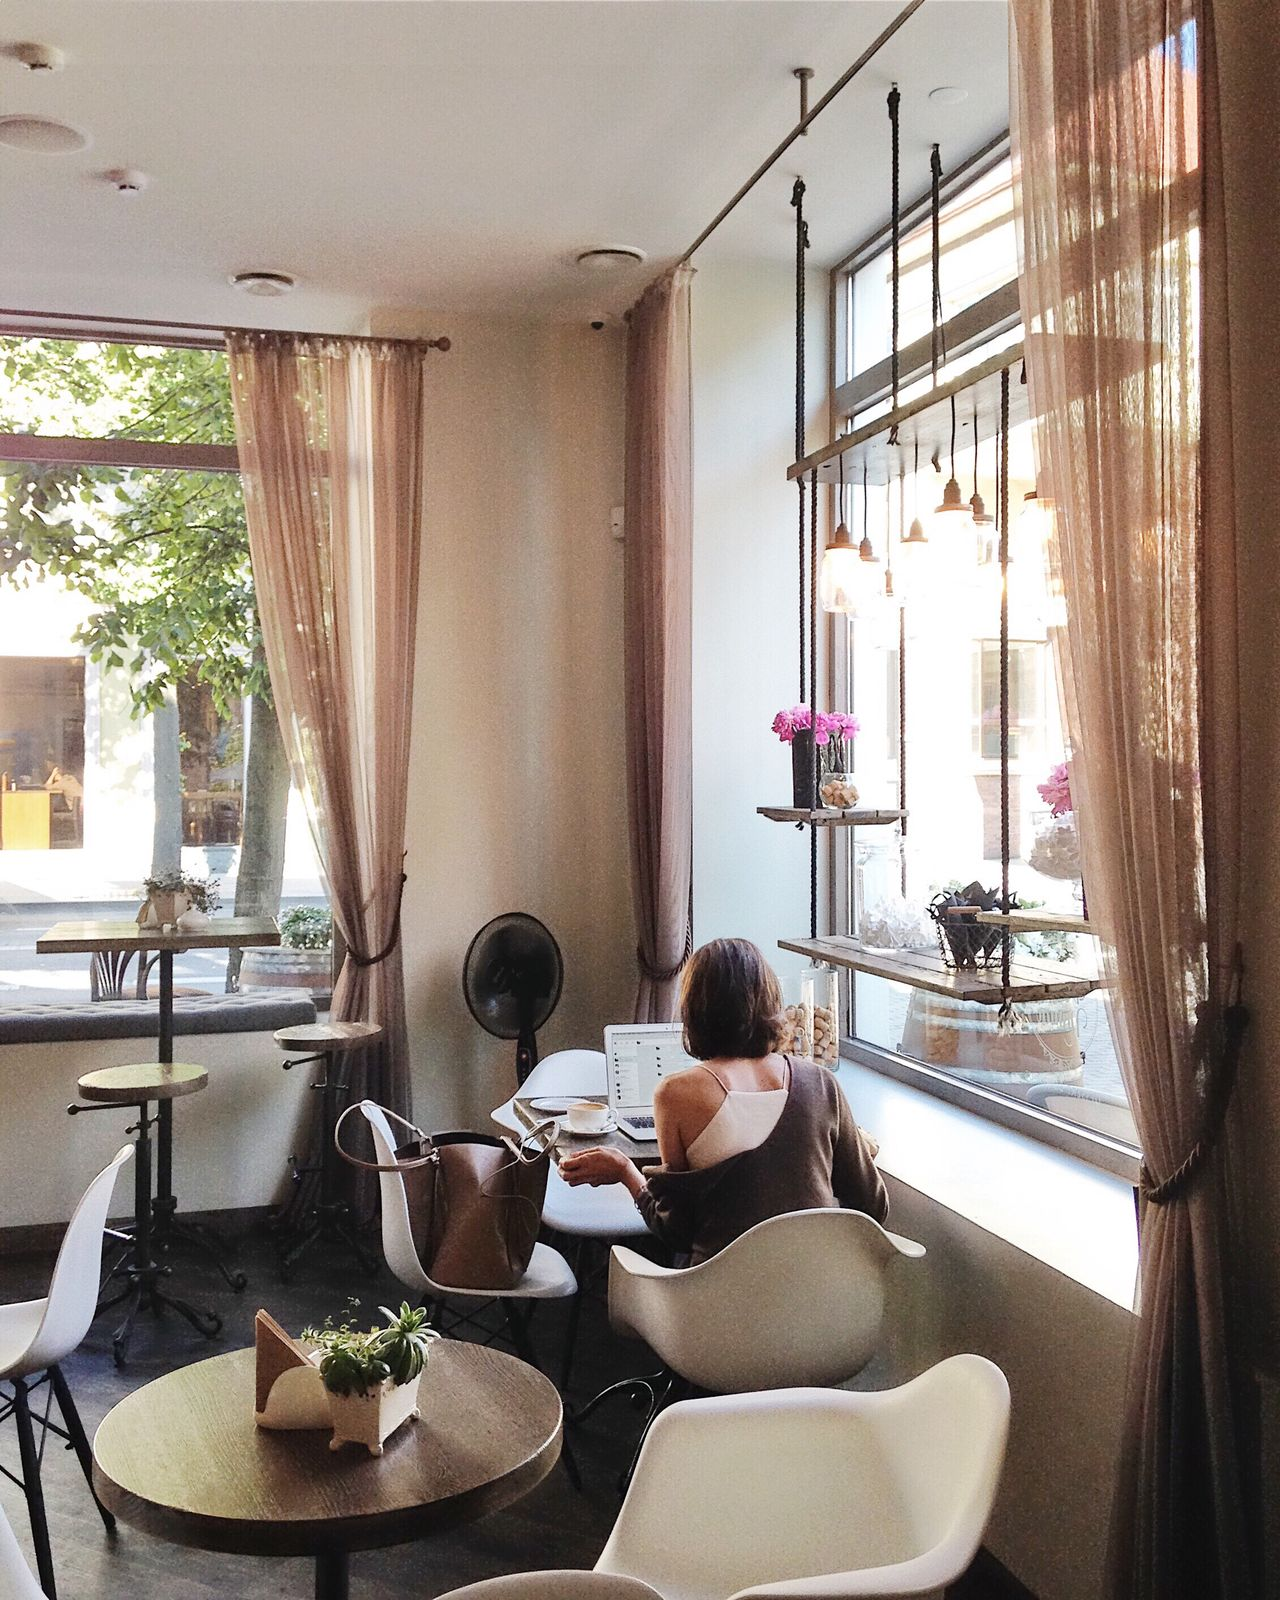 Woman working in the coffee shop Coffee Directly Above Creativity Window Indoors  One Person One Woman Only Domestic Room Home Interior Only Women Sitting Using Laptop Adults Only Design